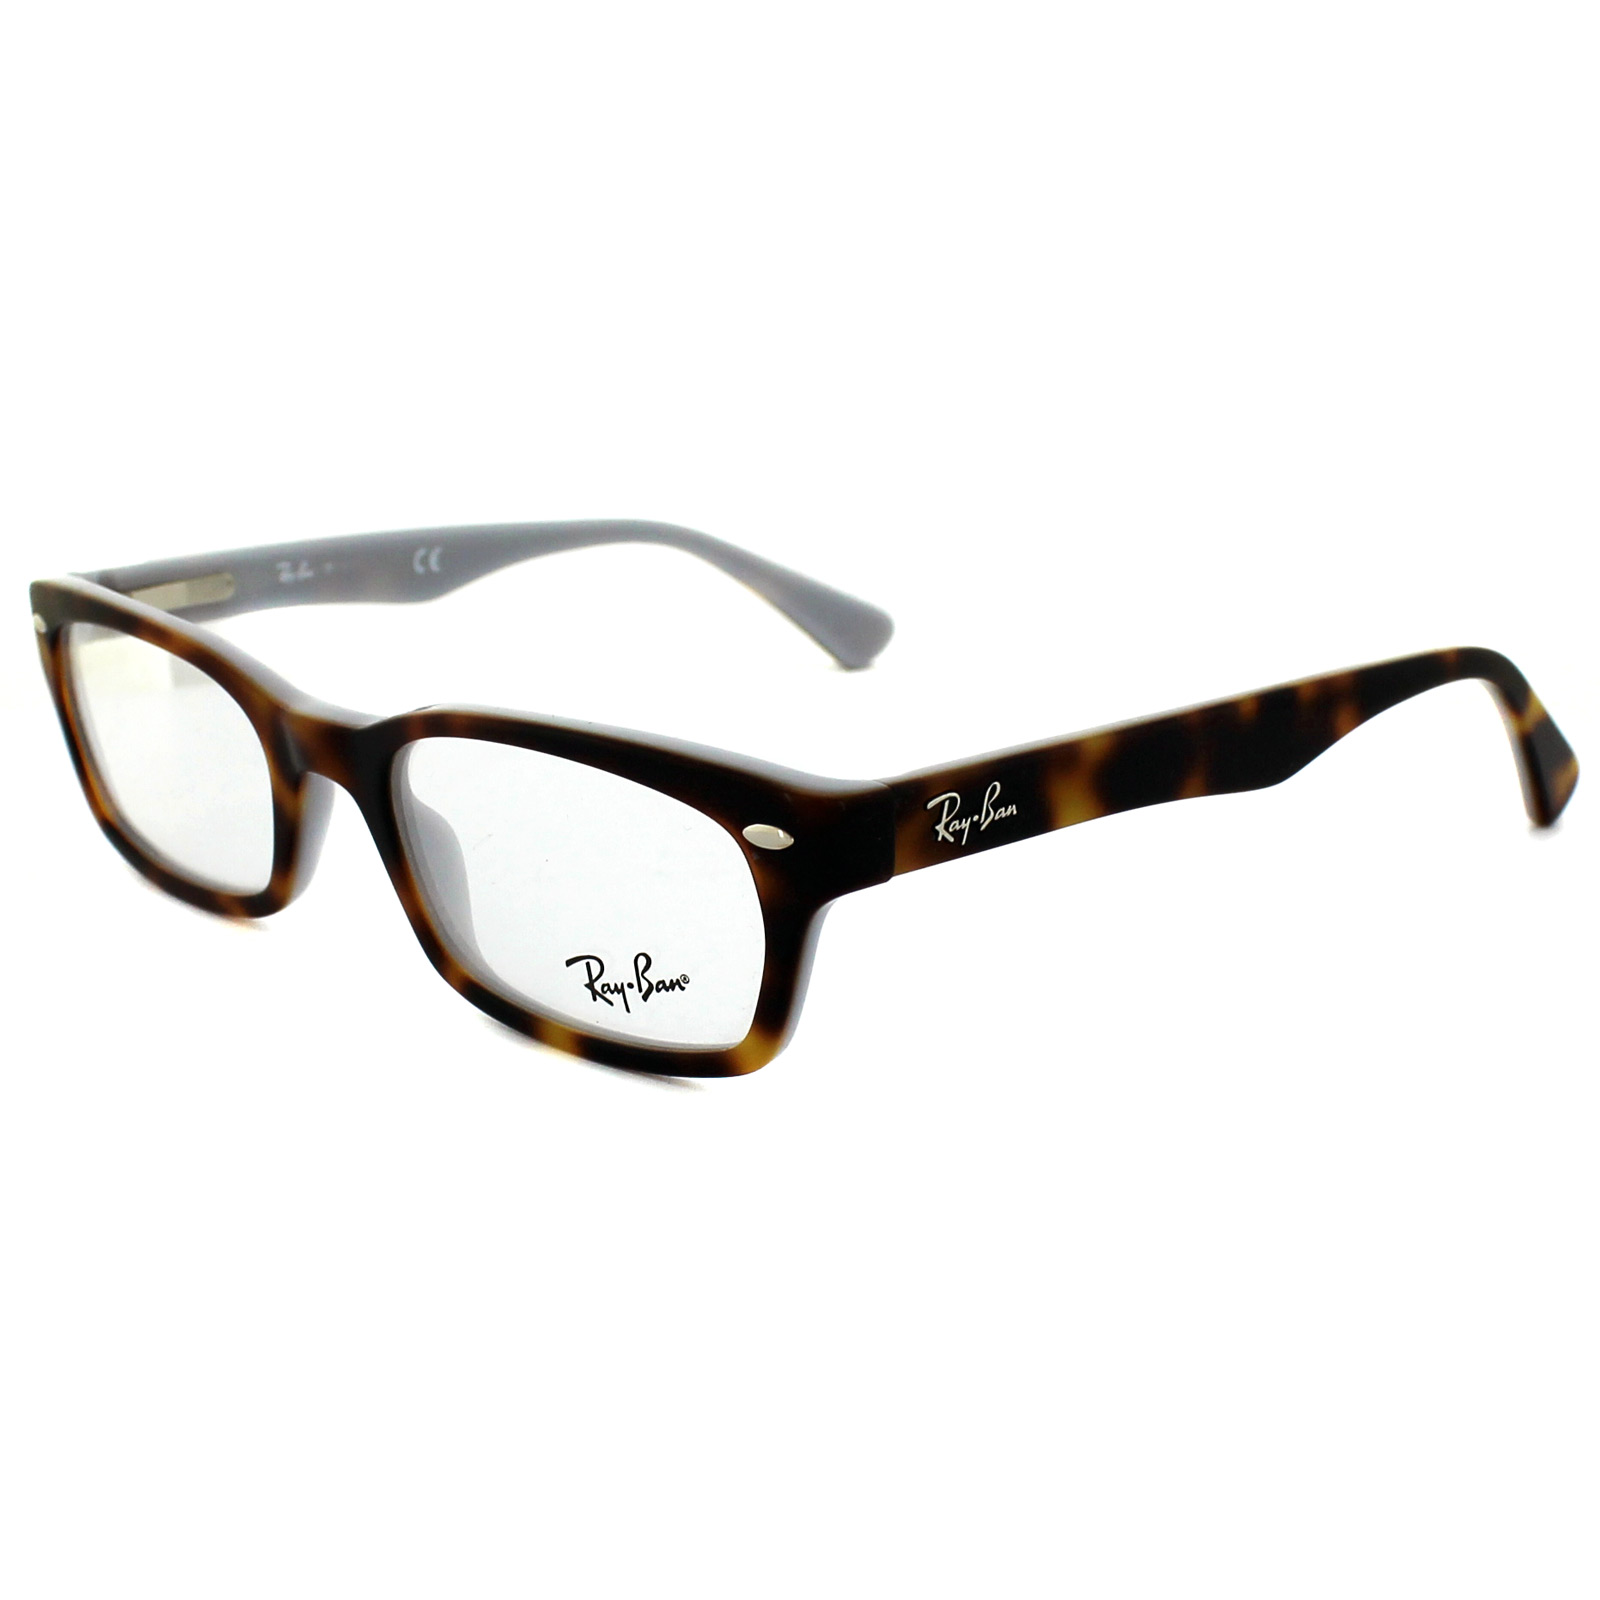 sentinel ray ban glasses frames 5150 5238 top havana on opal blue